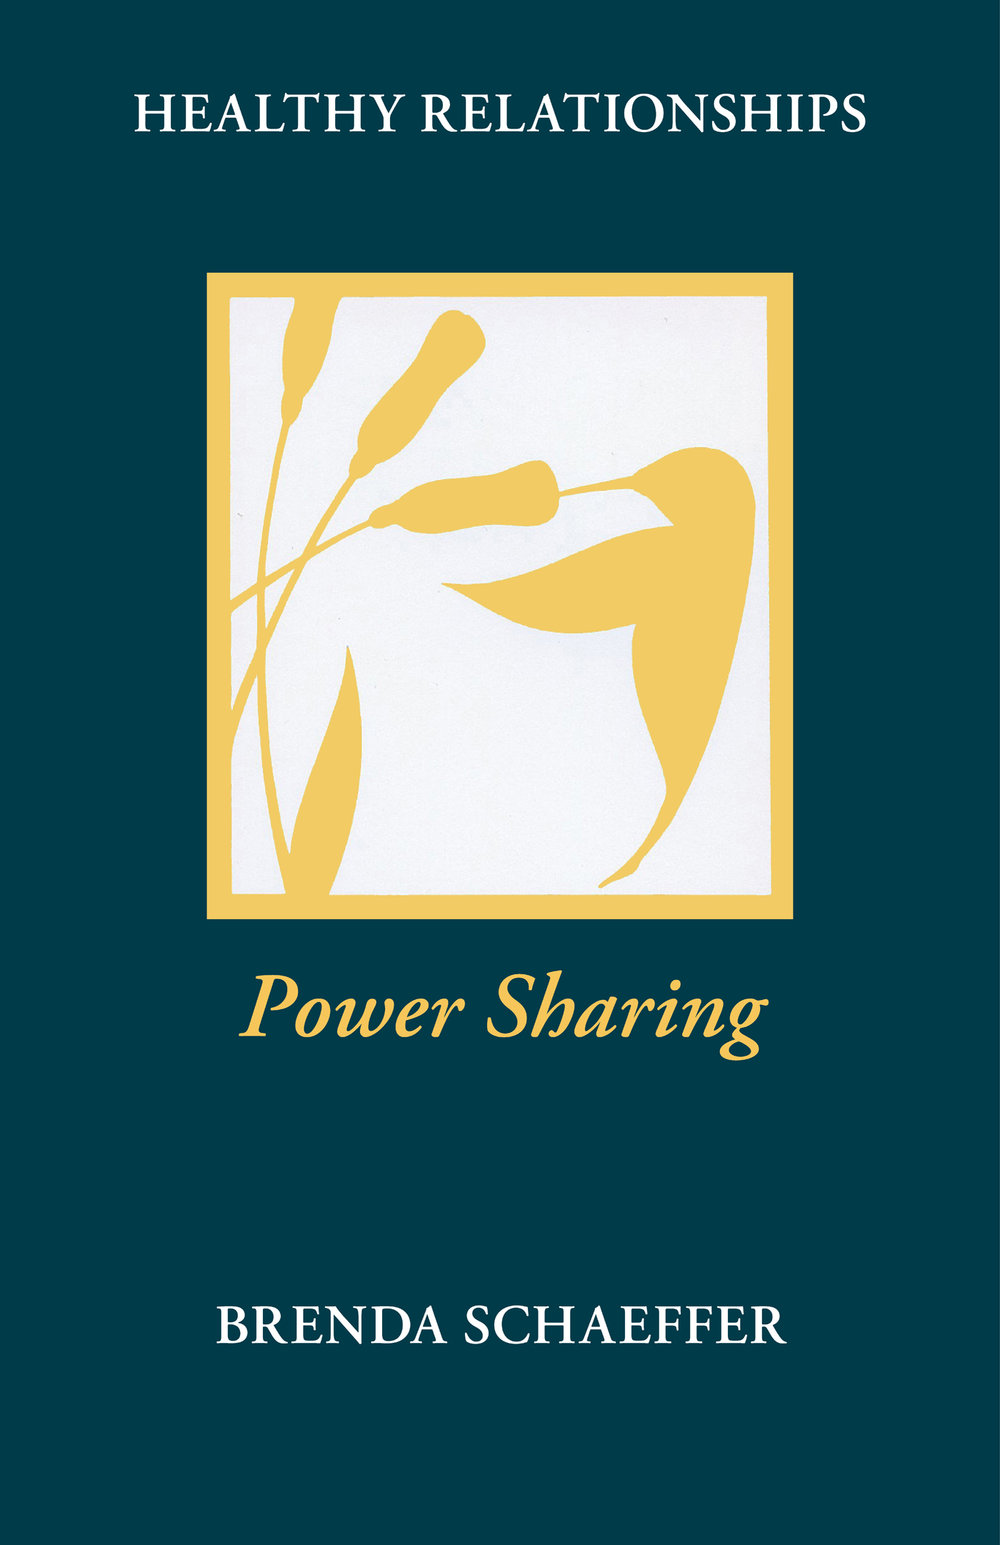 Power Sharing Cover.jpg